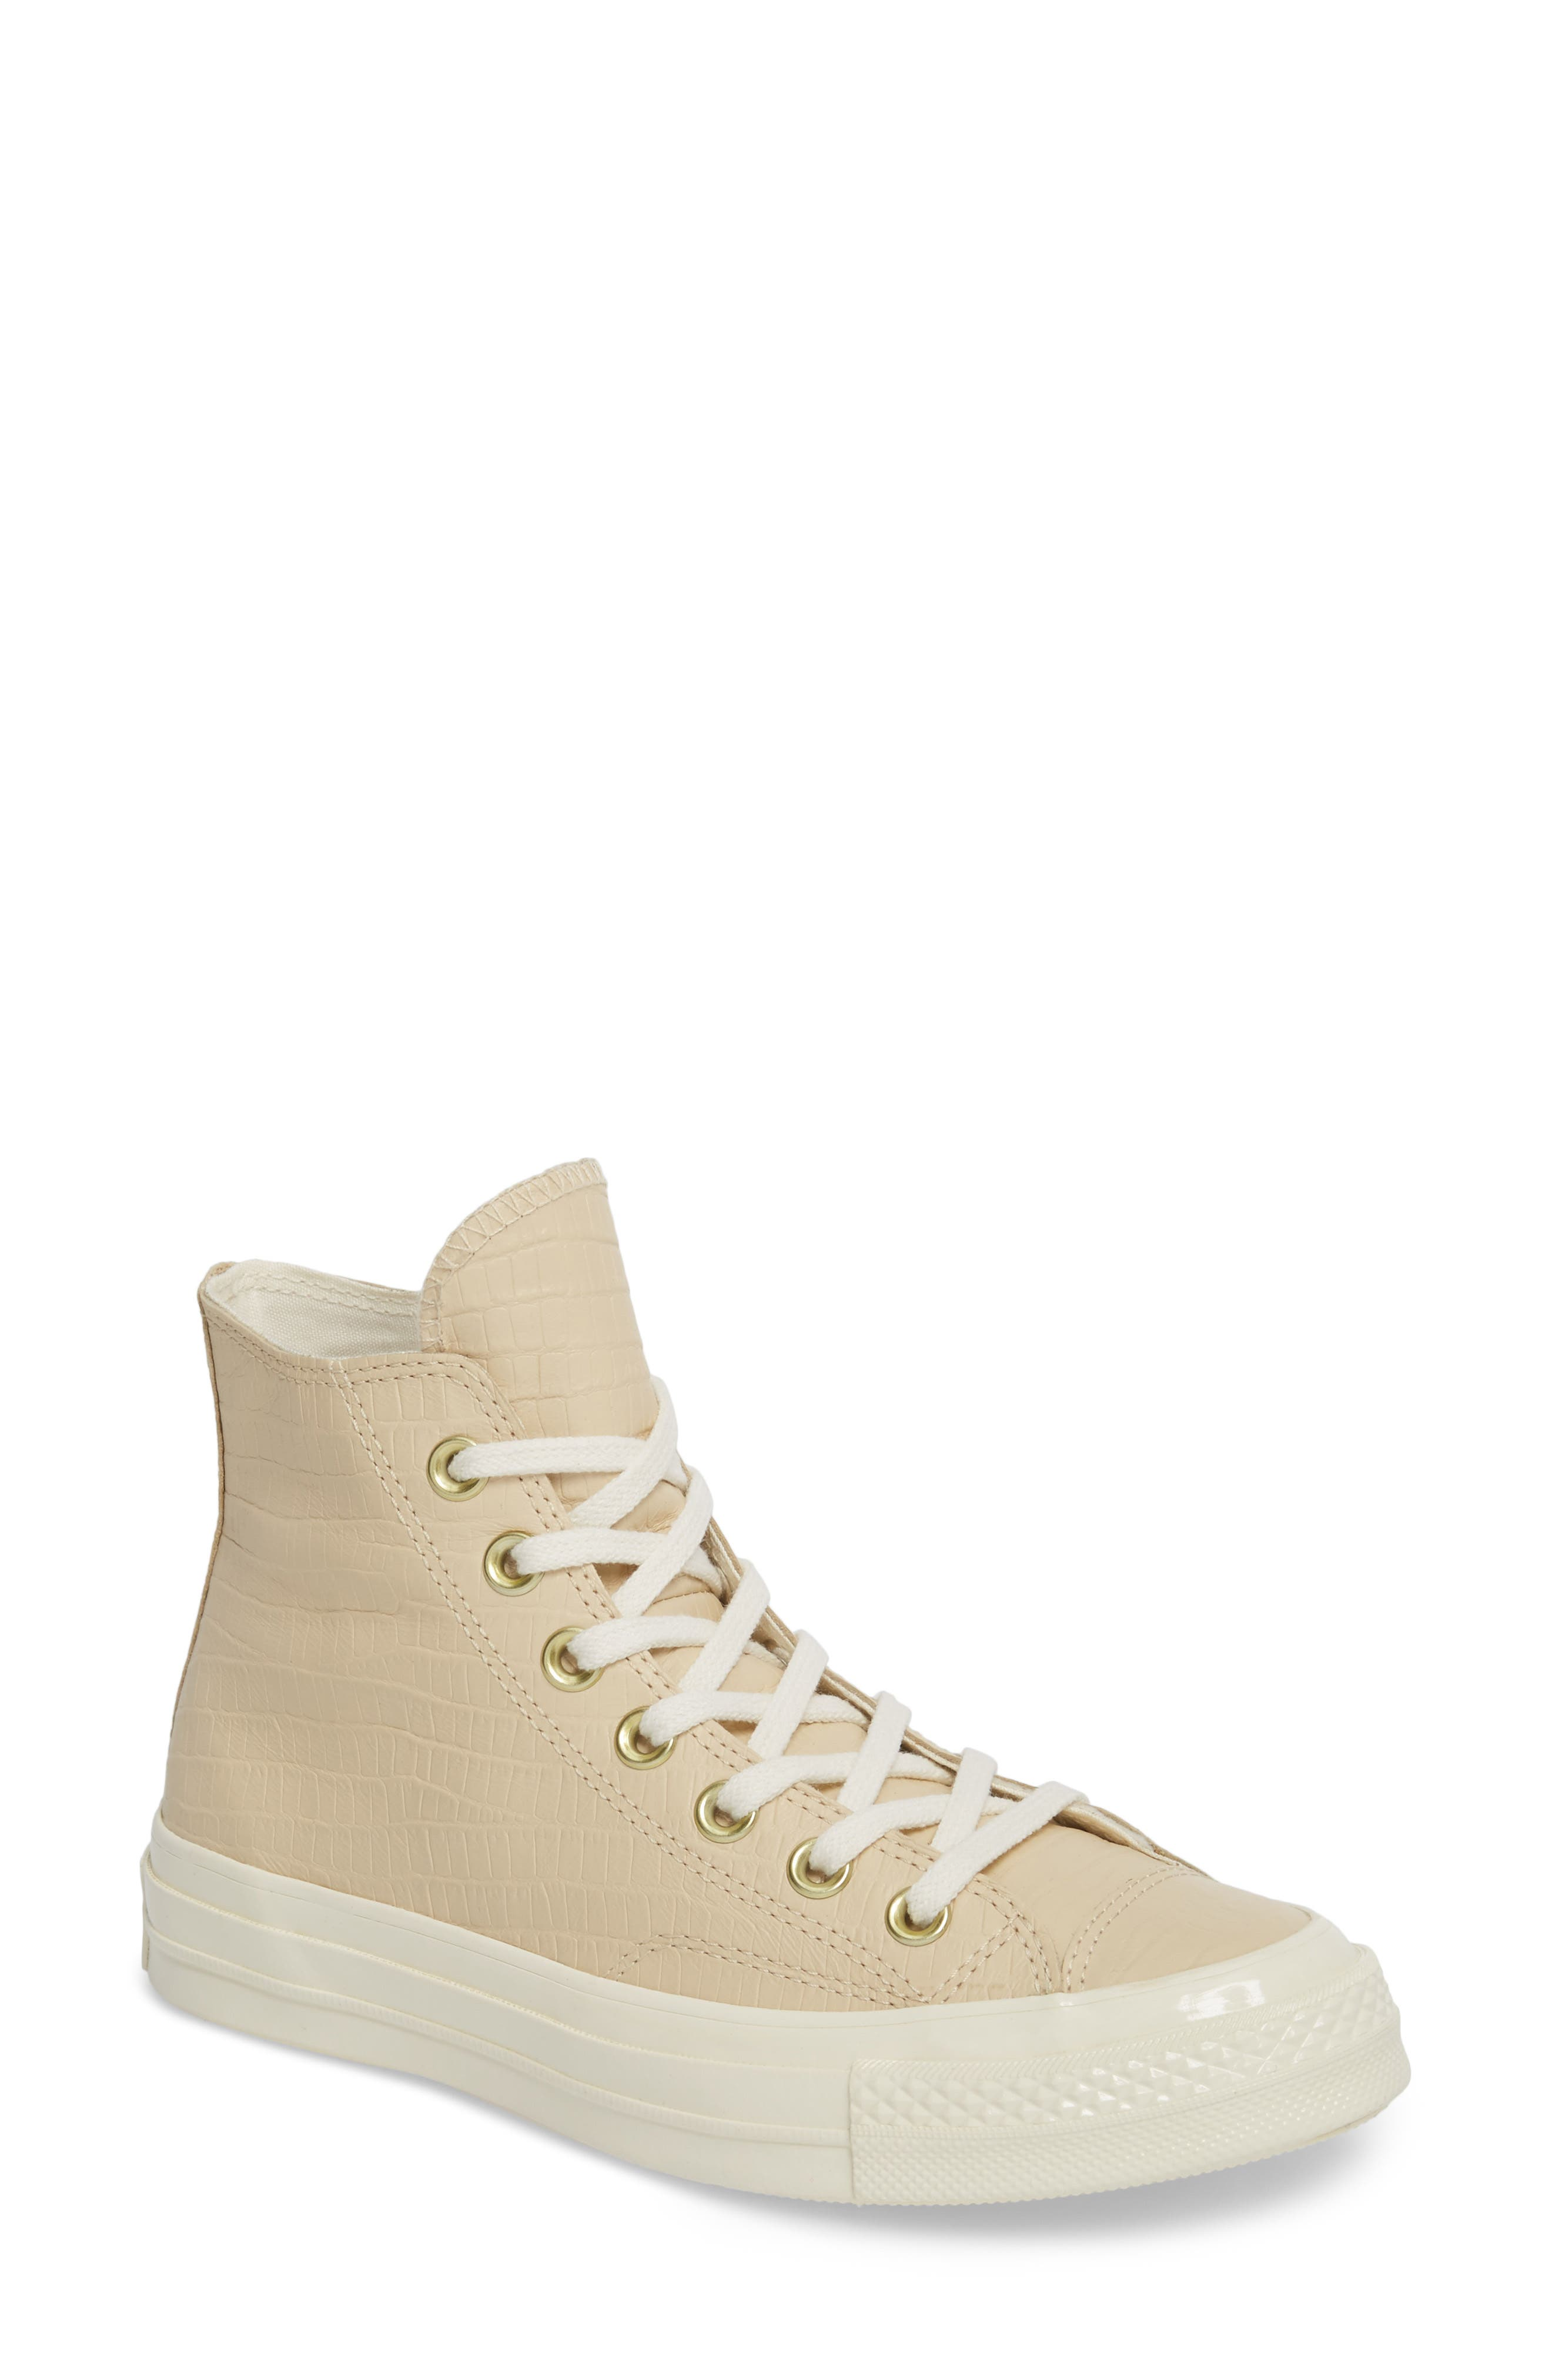 Chuck Taylor<sup>®</sup> All Star<sup>®</sup> CT 70 Reptile High Top Sneaker, Main, color, 250